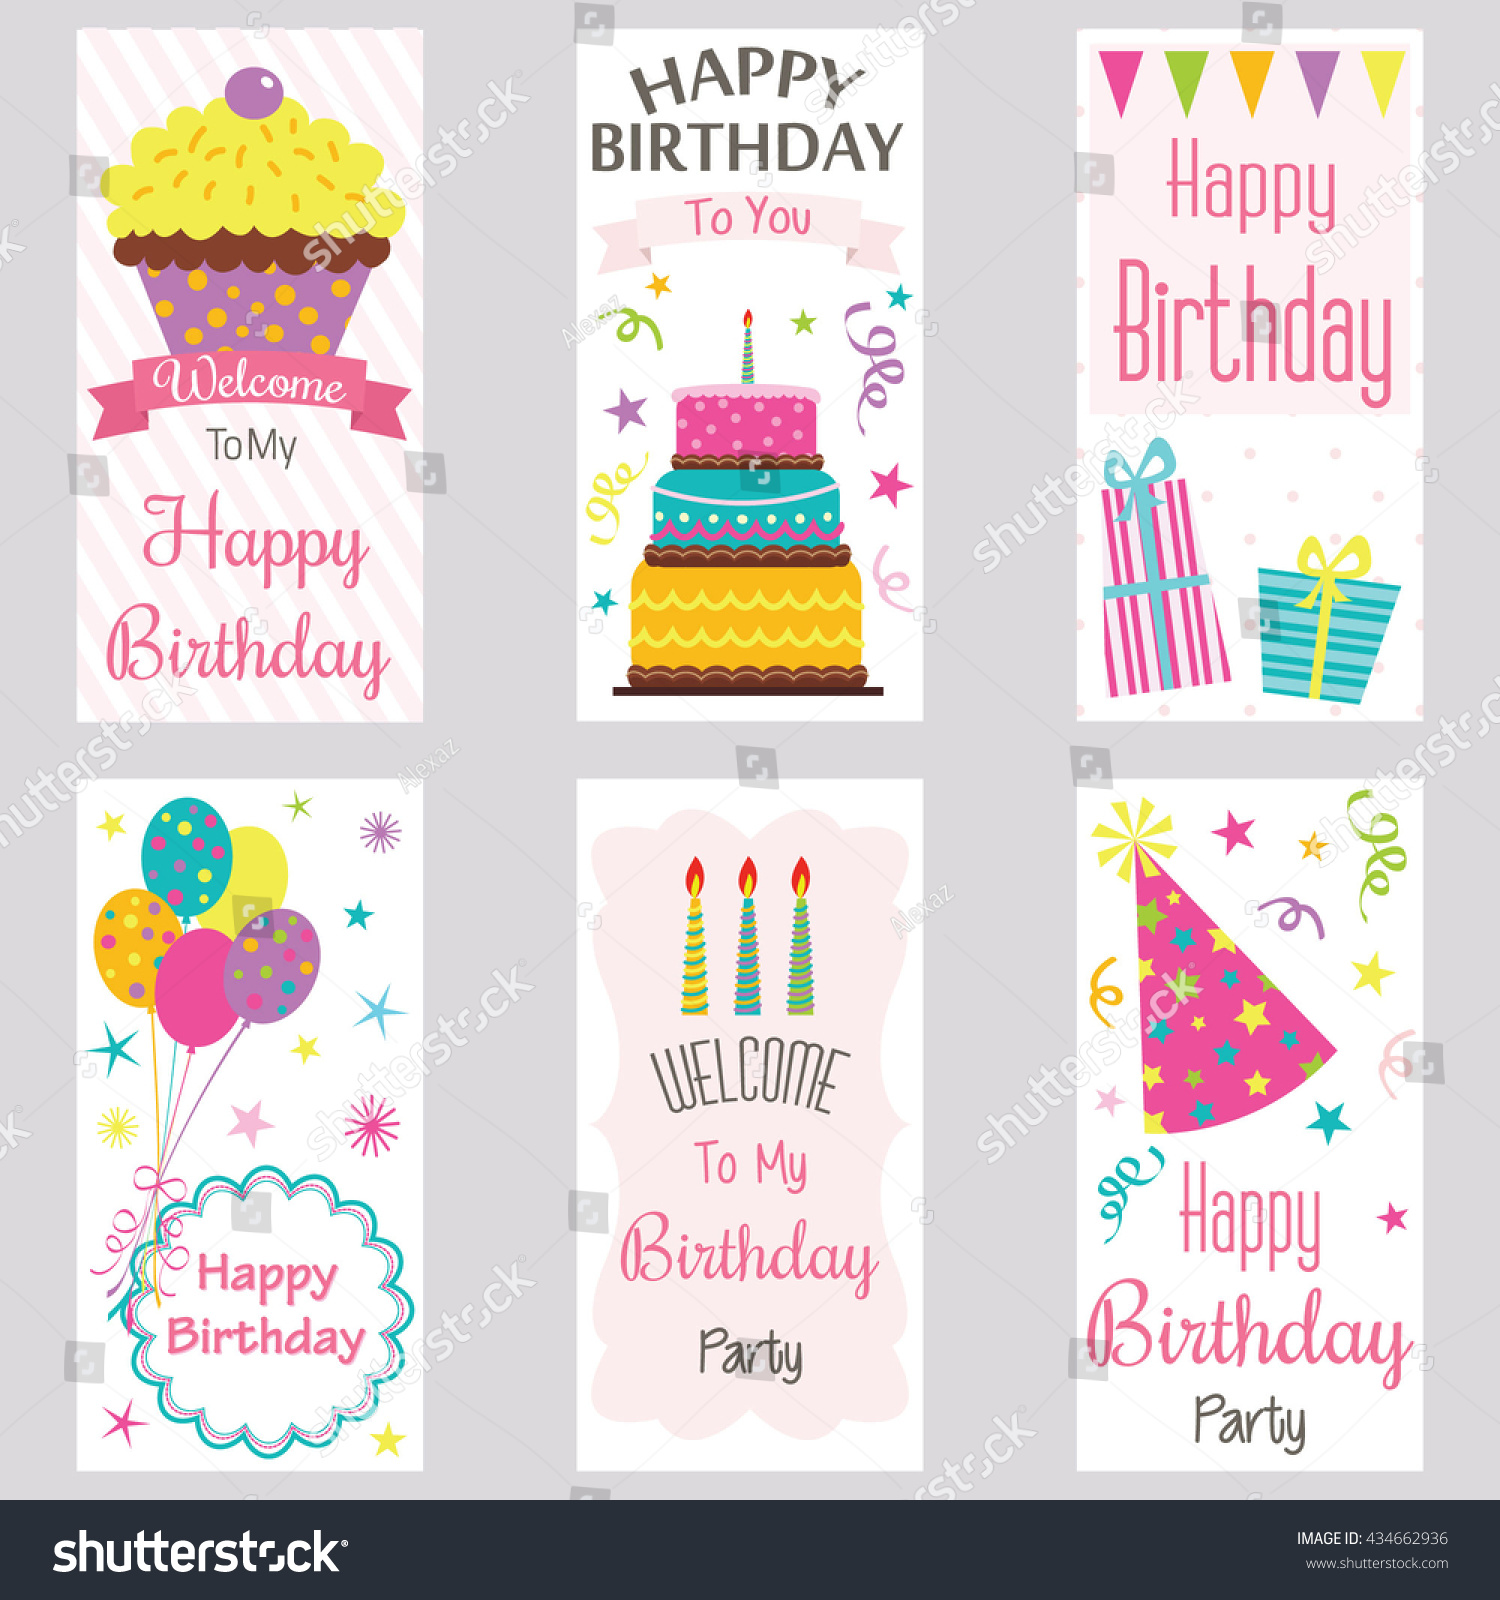 Happy Birthday Invitation Cardbirthday Greeting Cardwelcome Stock ...